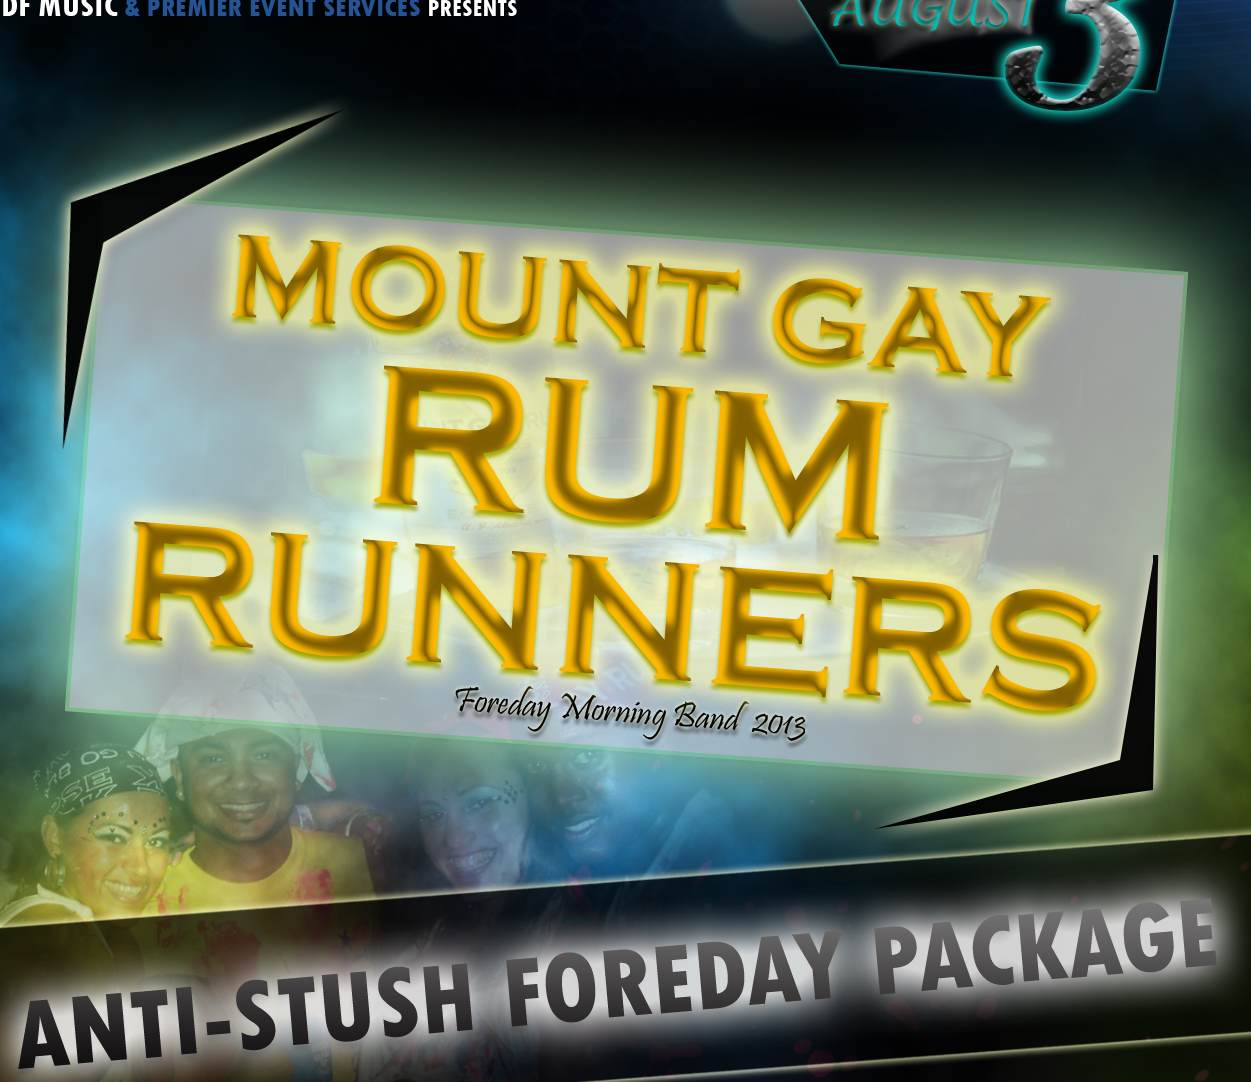 Foreday morning bands – Mount Gay Rum Runners